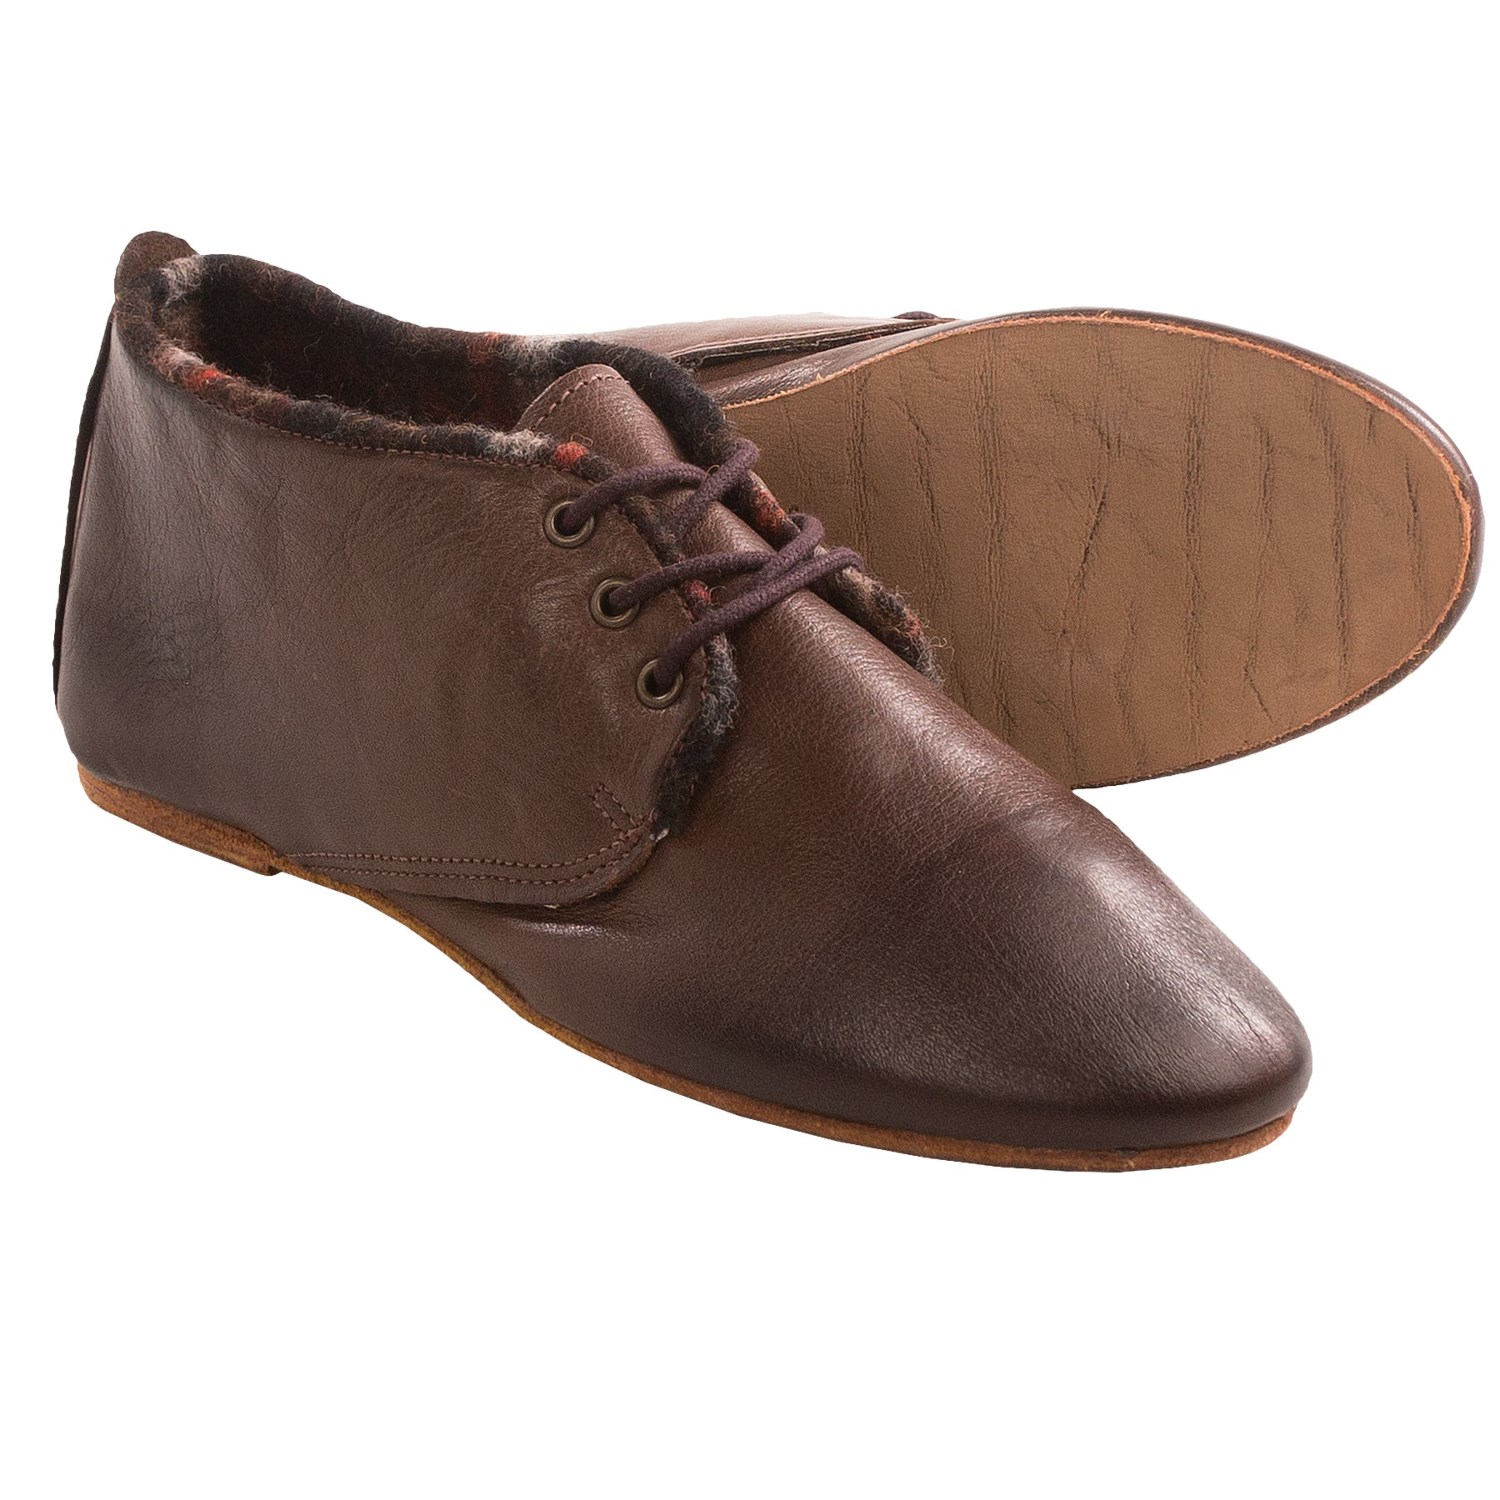 Model Born Ofelia Bay Vintage TStrap Shoes For Women In Bay Brown